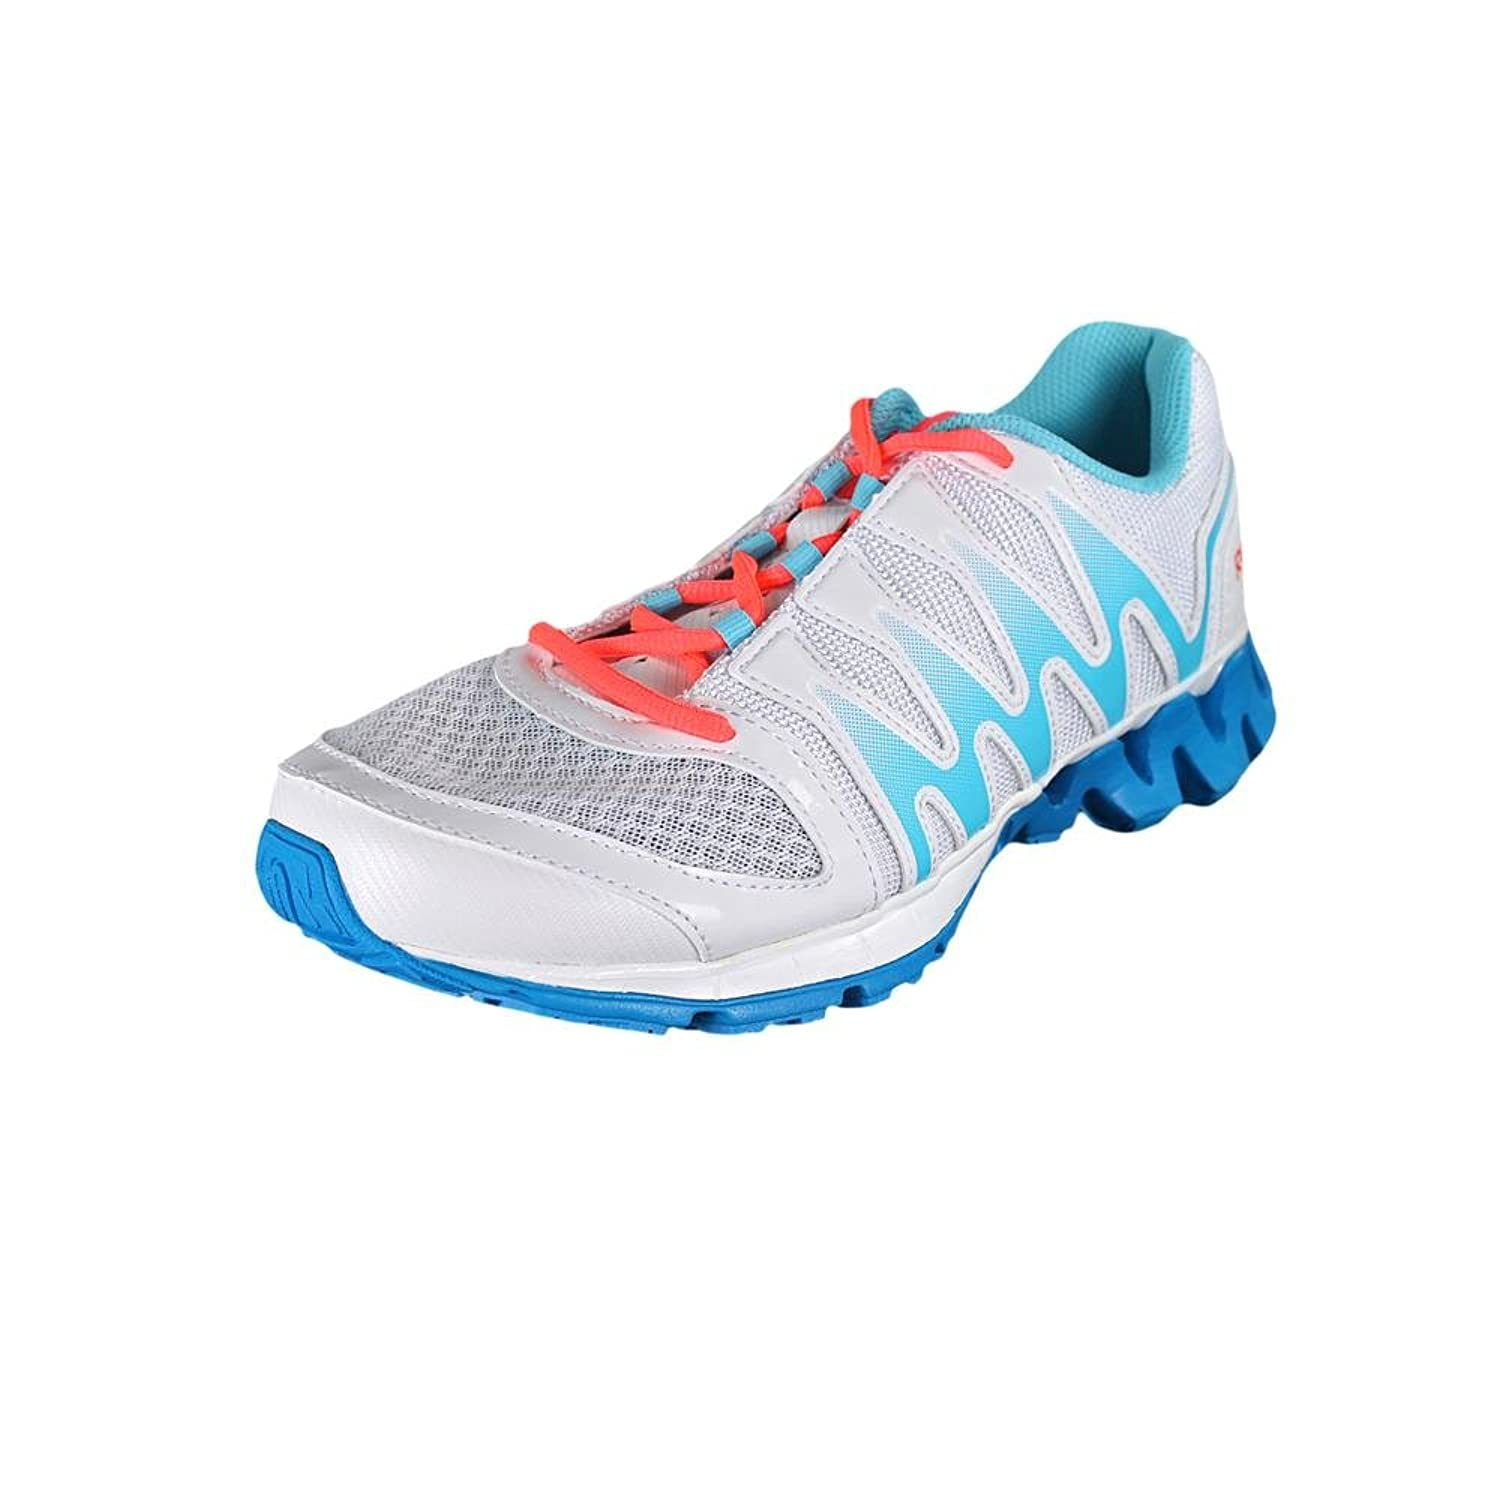 reebok womens running shoes wide toe box